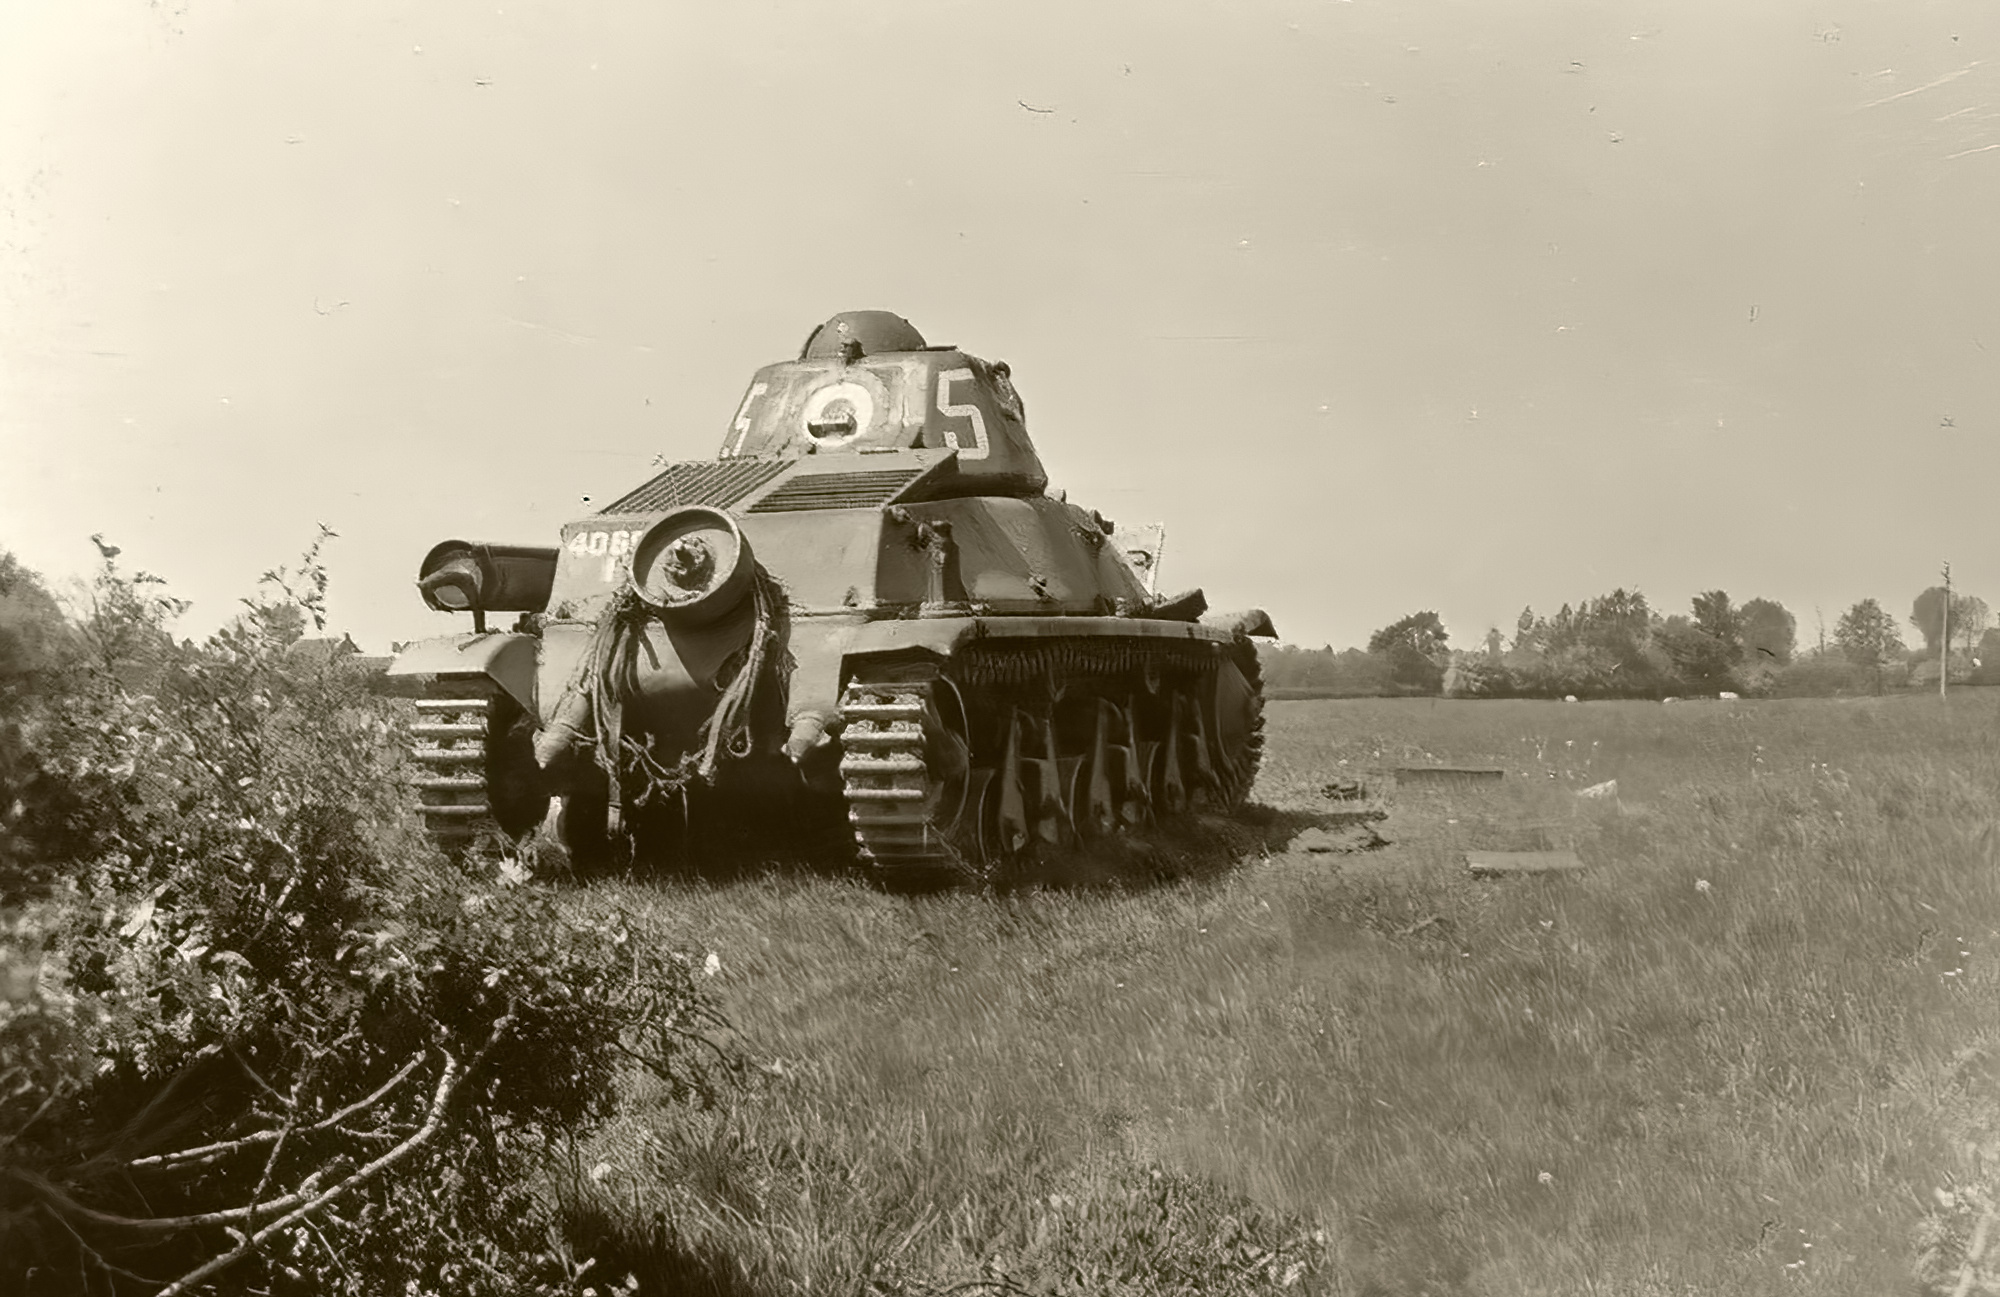 French Army Hotchkiss H39 White 5 at Bussy Saint Georges France 1940 ebay 01